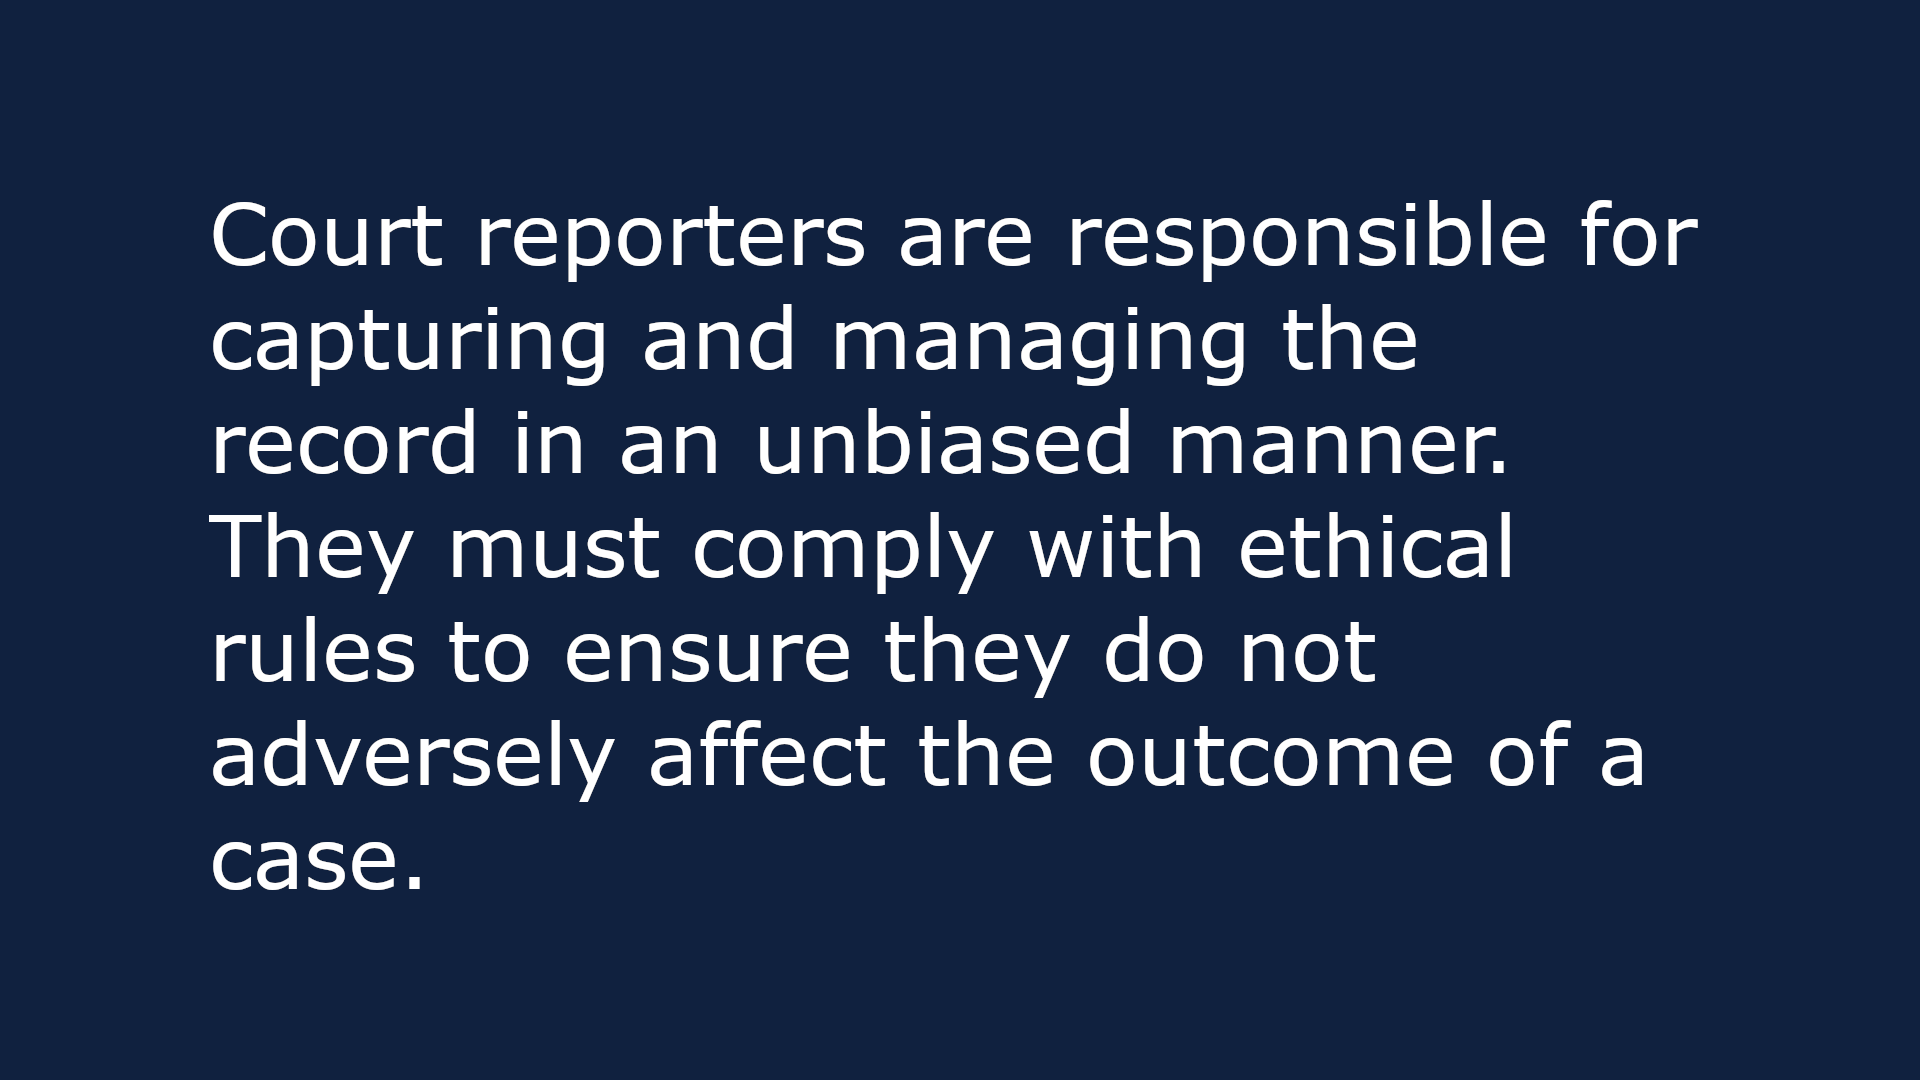 Text-based image that reads: Court reporters are responsible for capturing and managing the record in an unbiased manner. They must comply with ethical rules to ensure they do not adversely affect the outcome of a case.